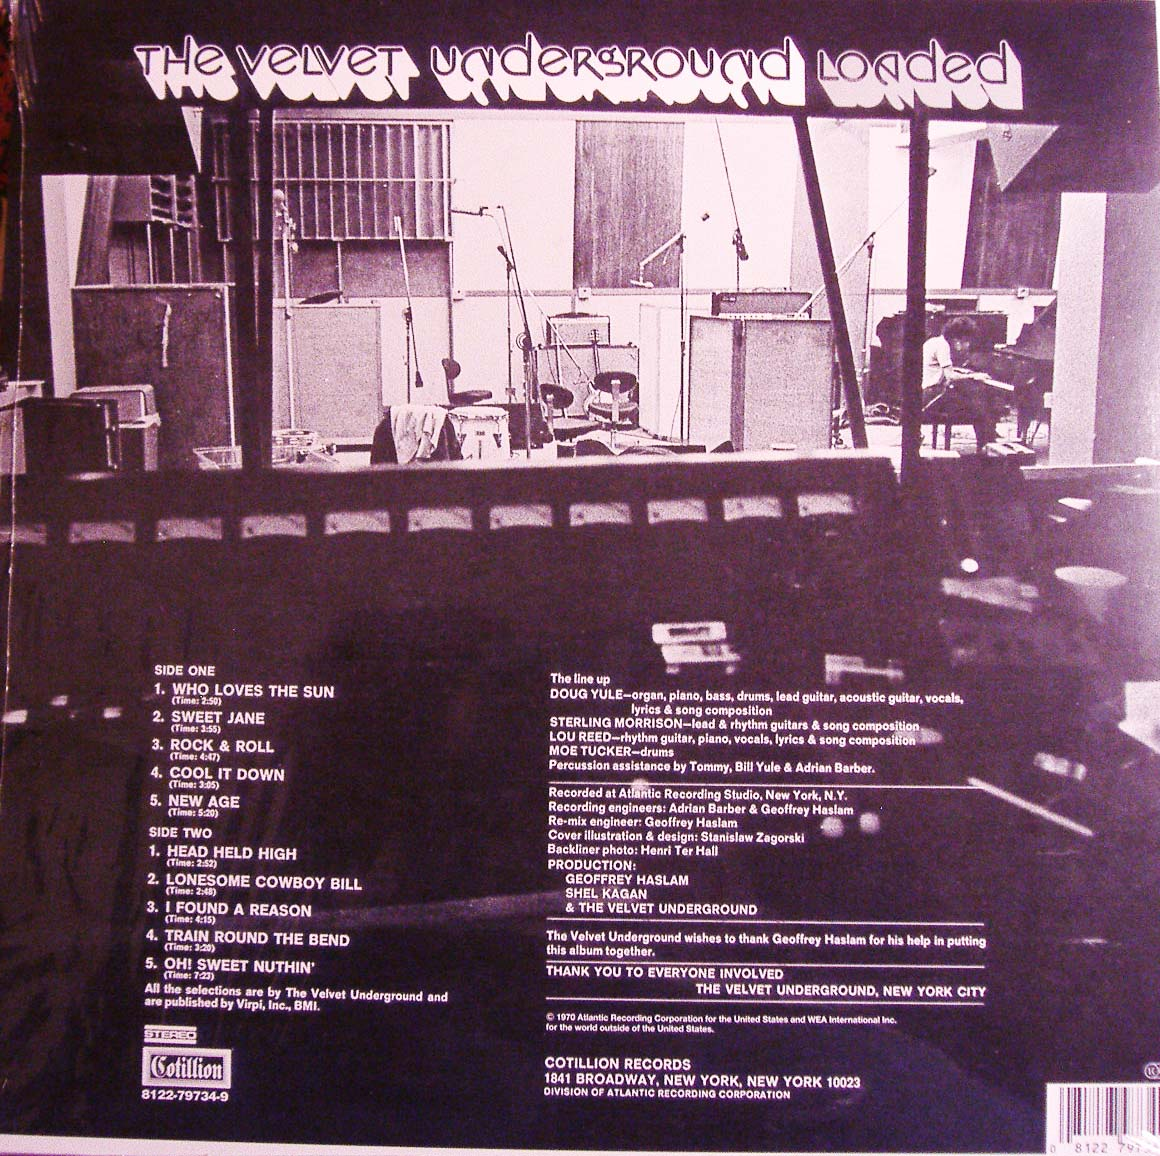 Closed Groove Loaded The Velvet Underground 1970